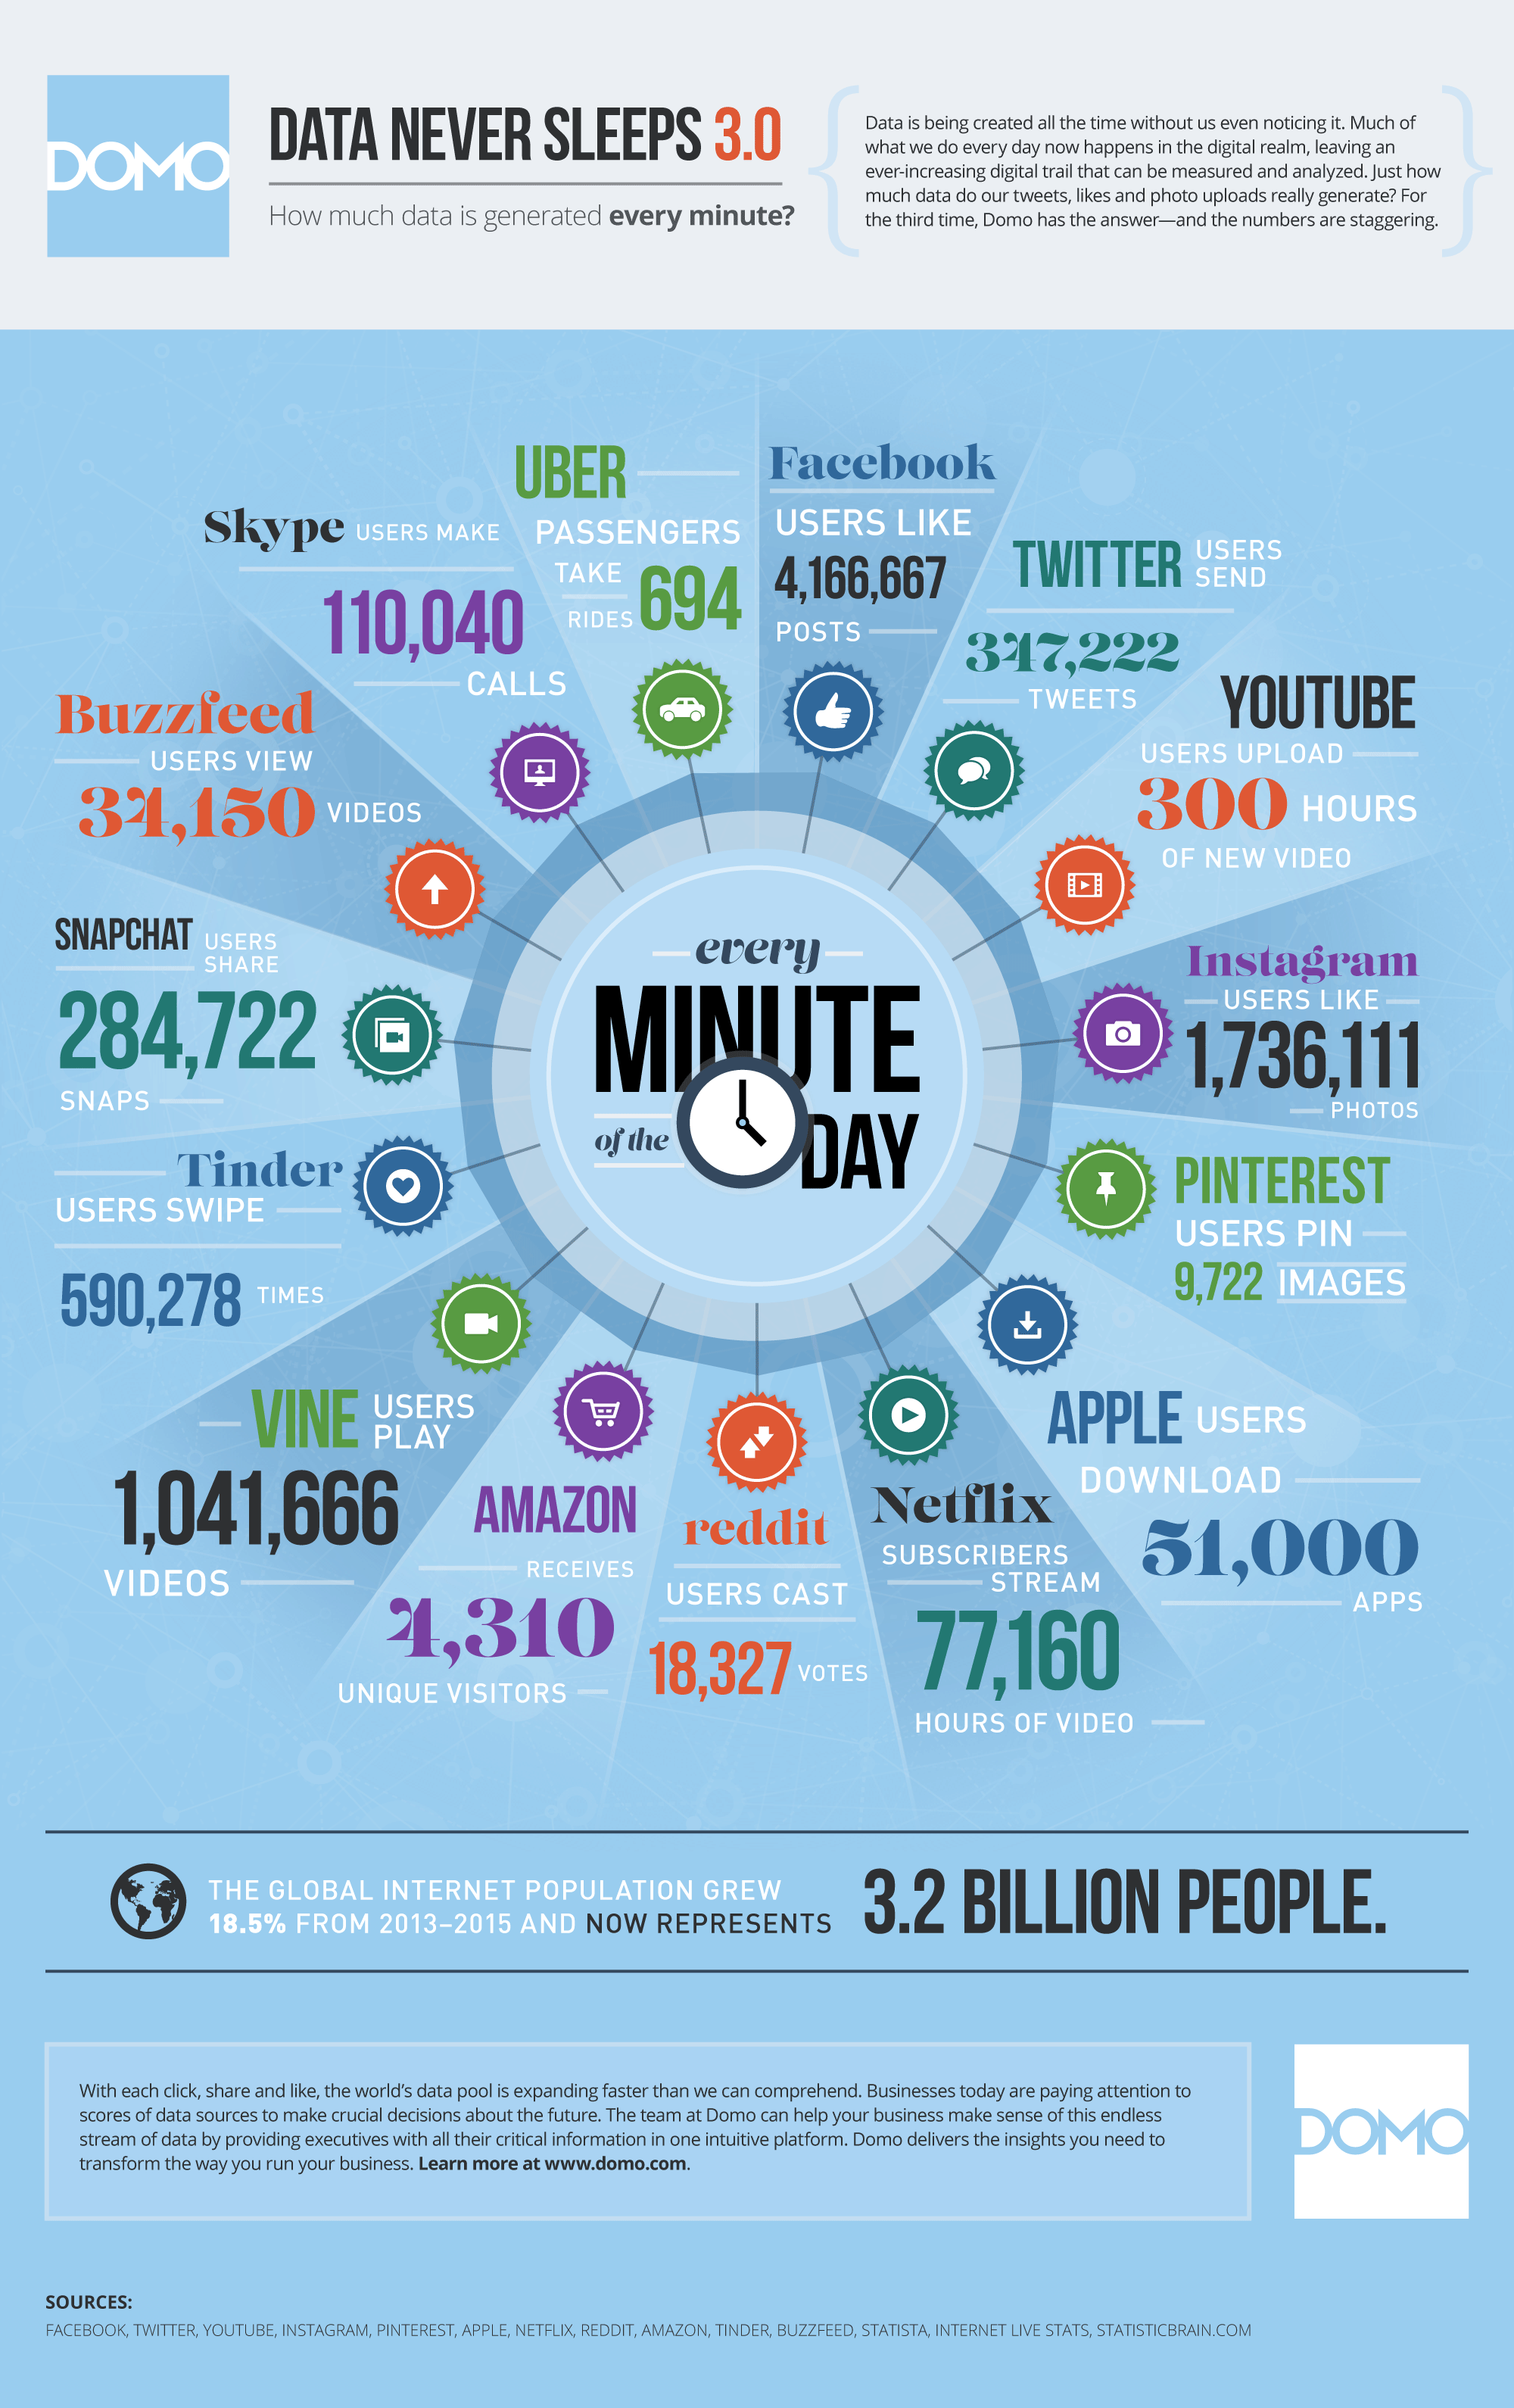 Infographic showing how much data is generated during a single minute